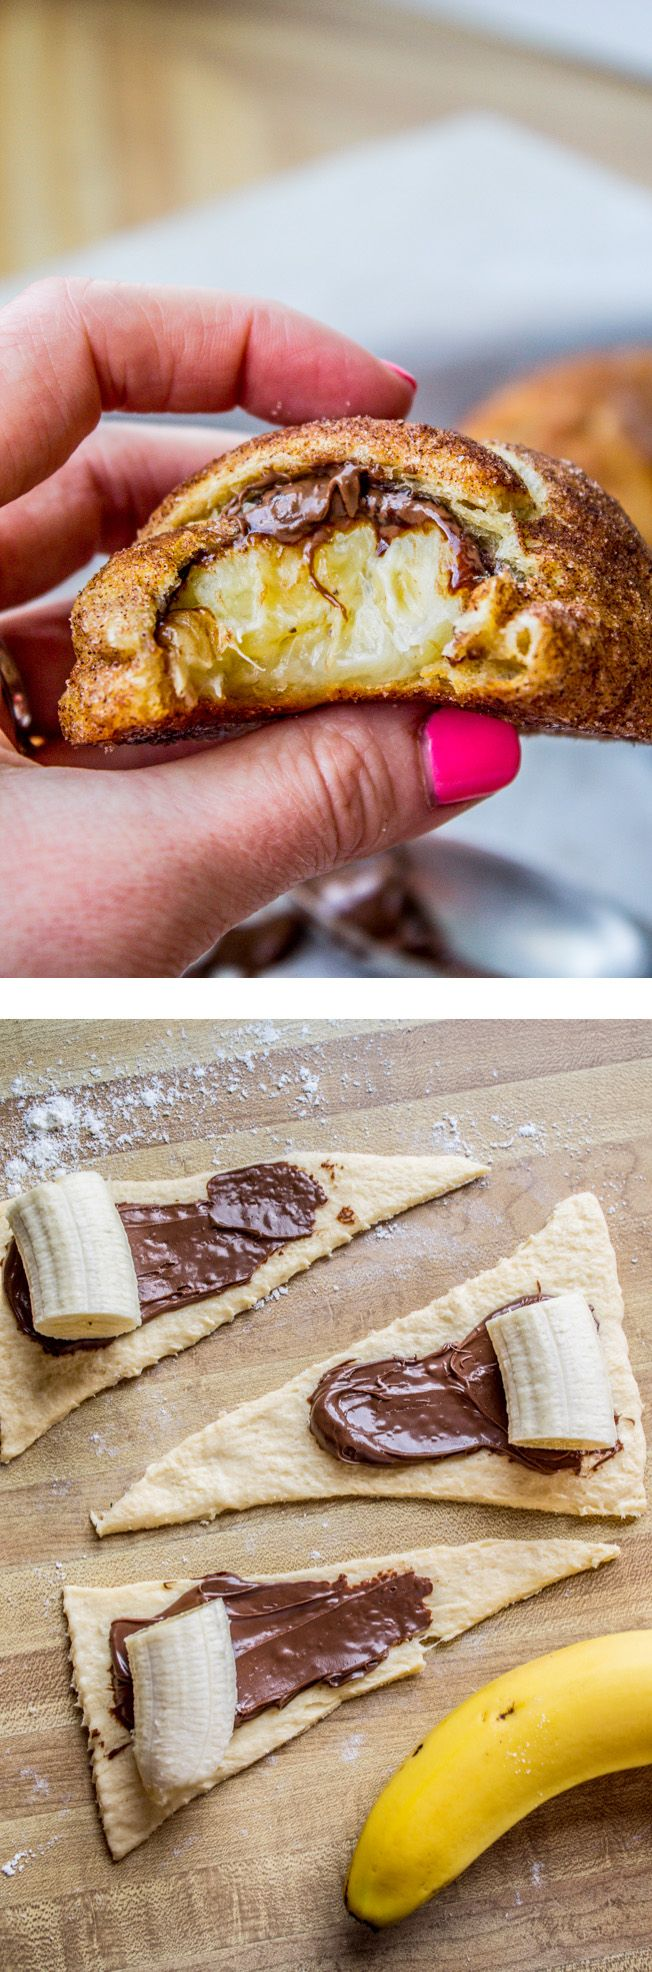 Stuff a buttery crescent roll with banana and a schmear of Nutella, roll it in cinnamon sugar, and bake. This is the easiest recipe for happiness, in 10 minutes flat.